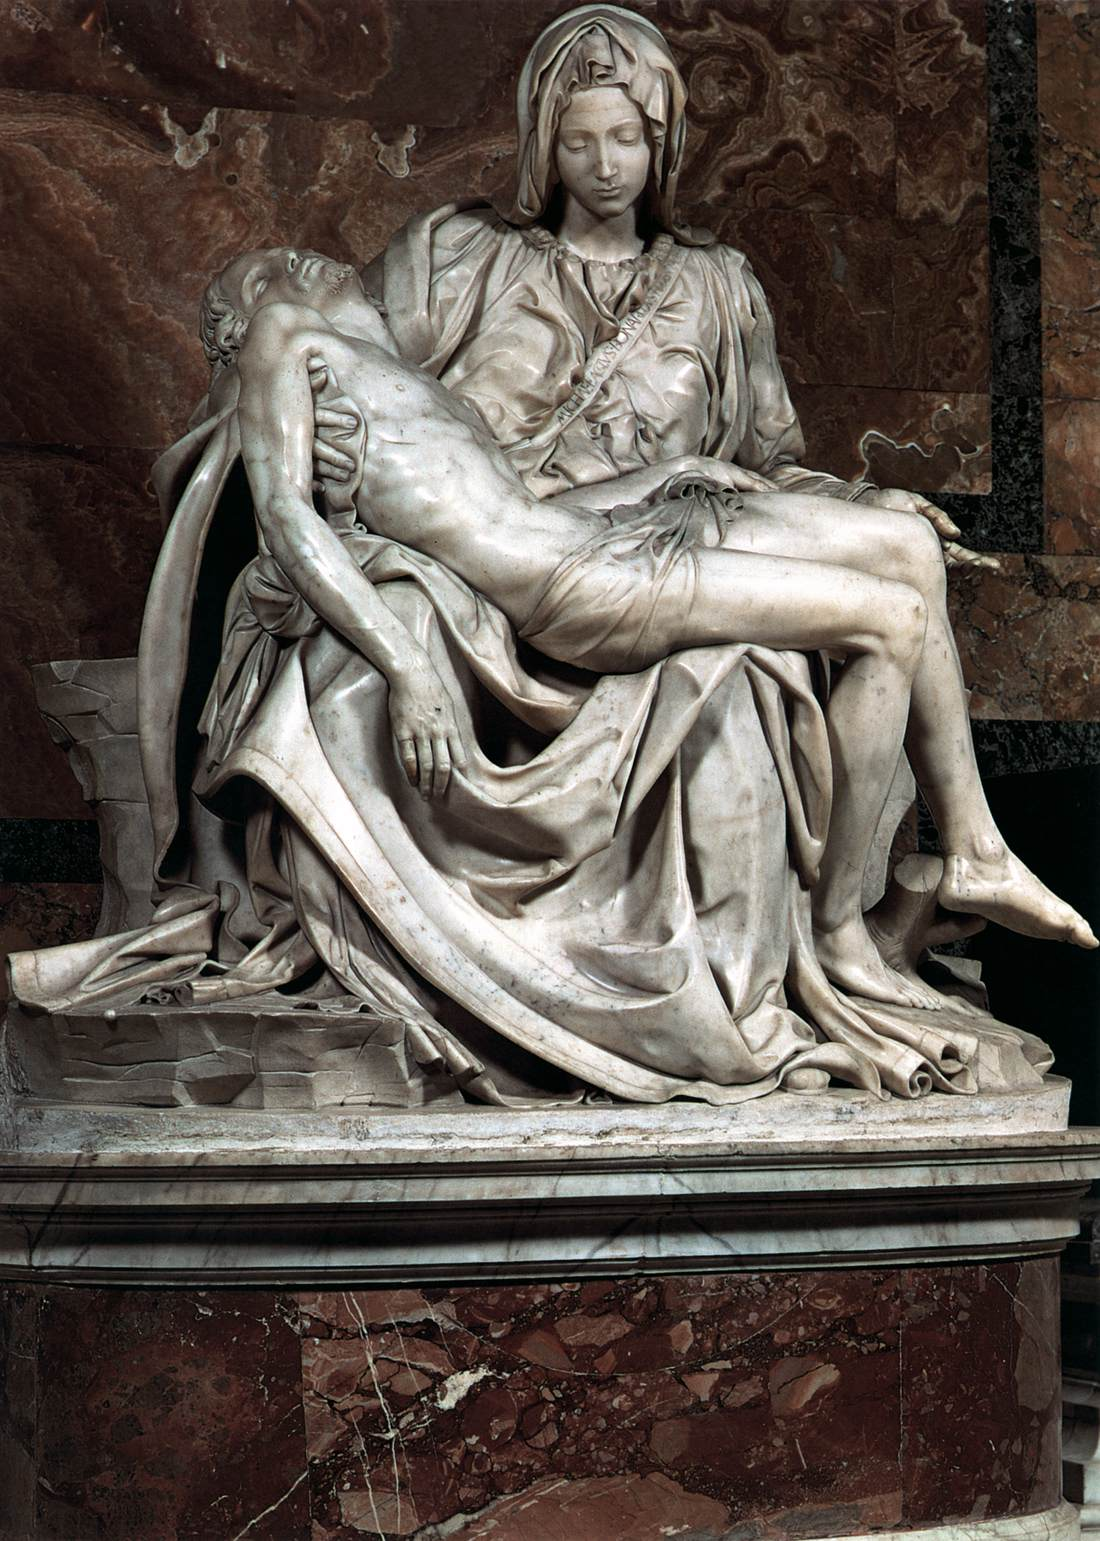 The works of michelangelo one of the greatest artists of all time